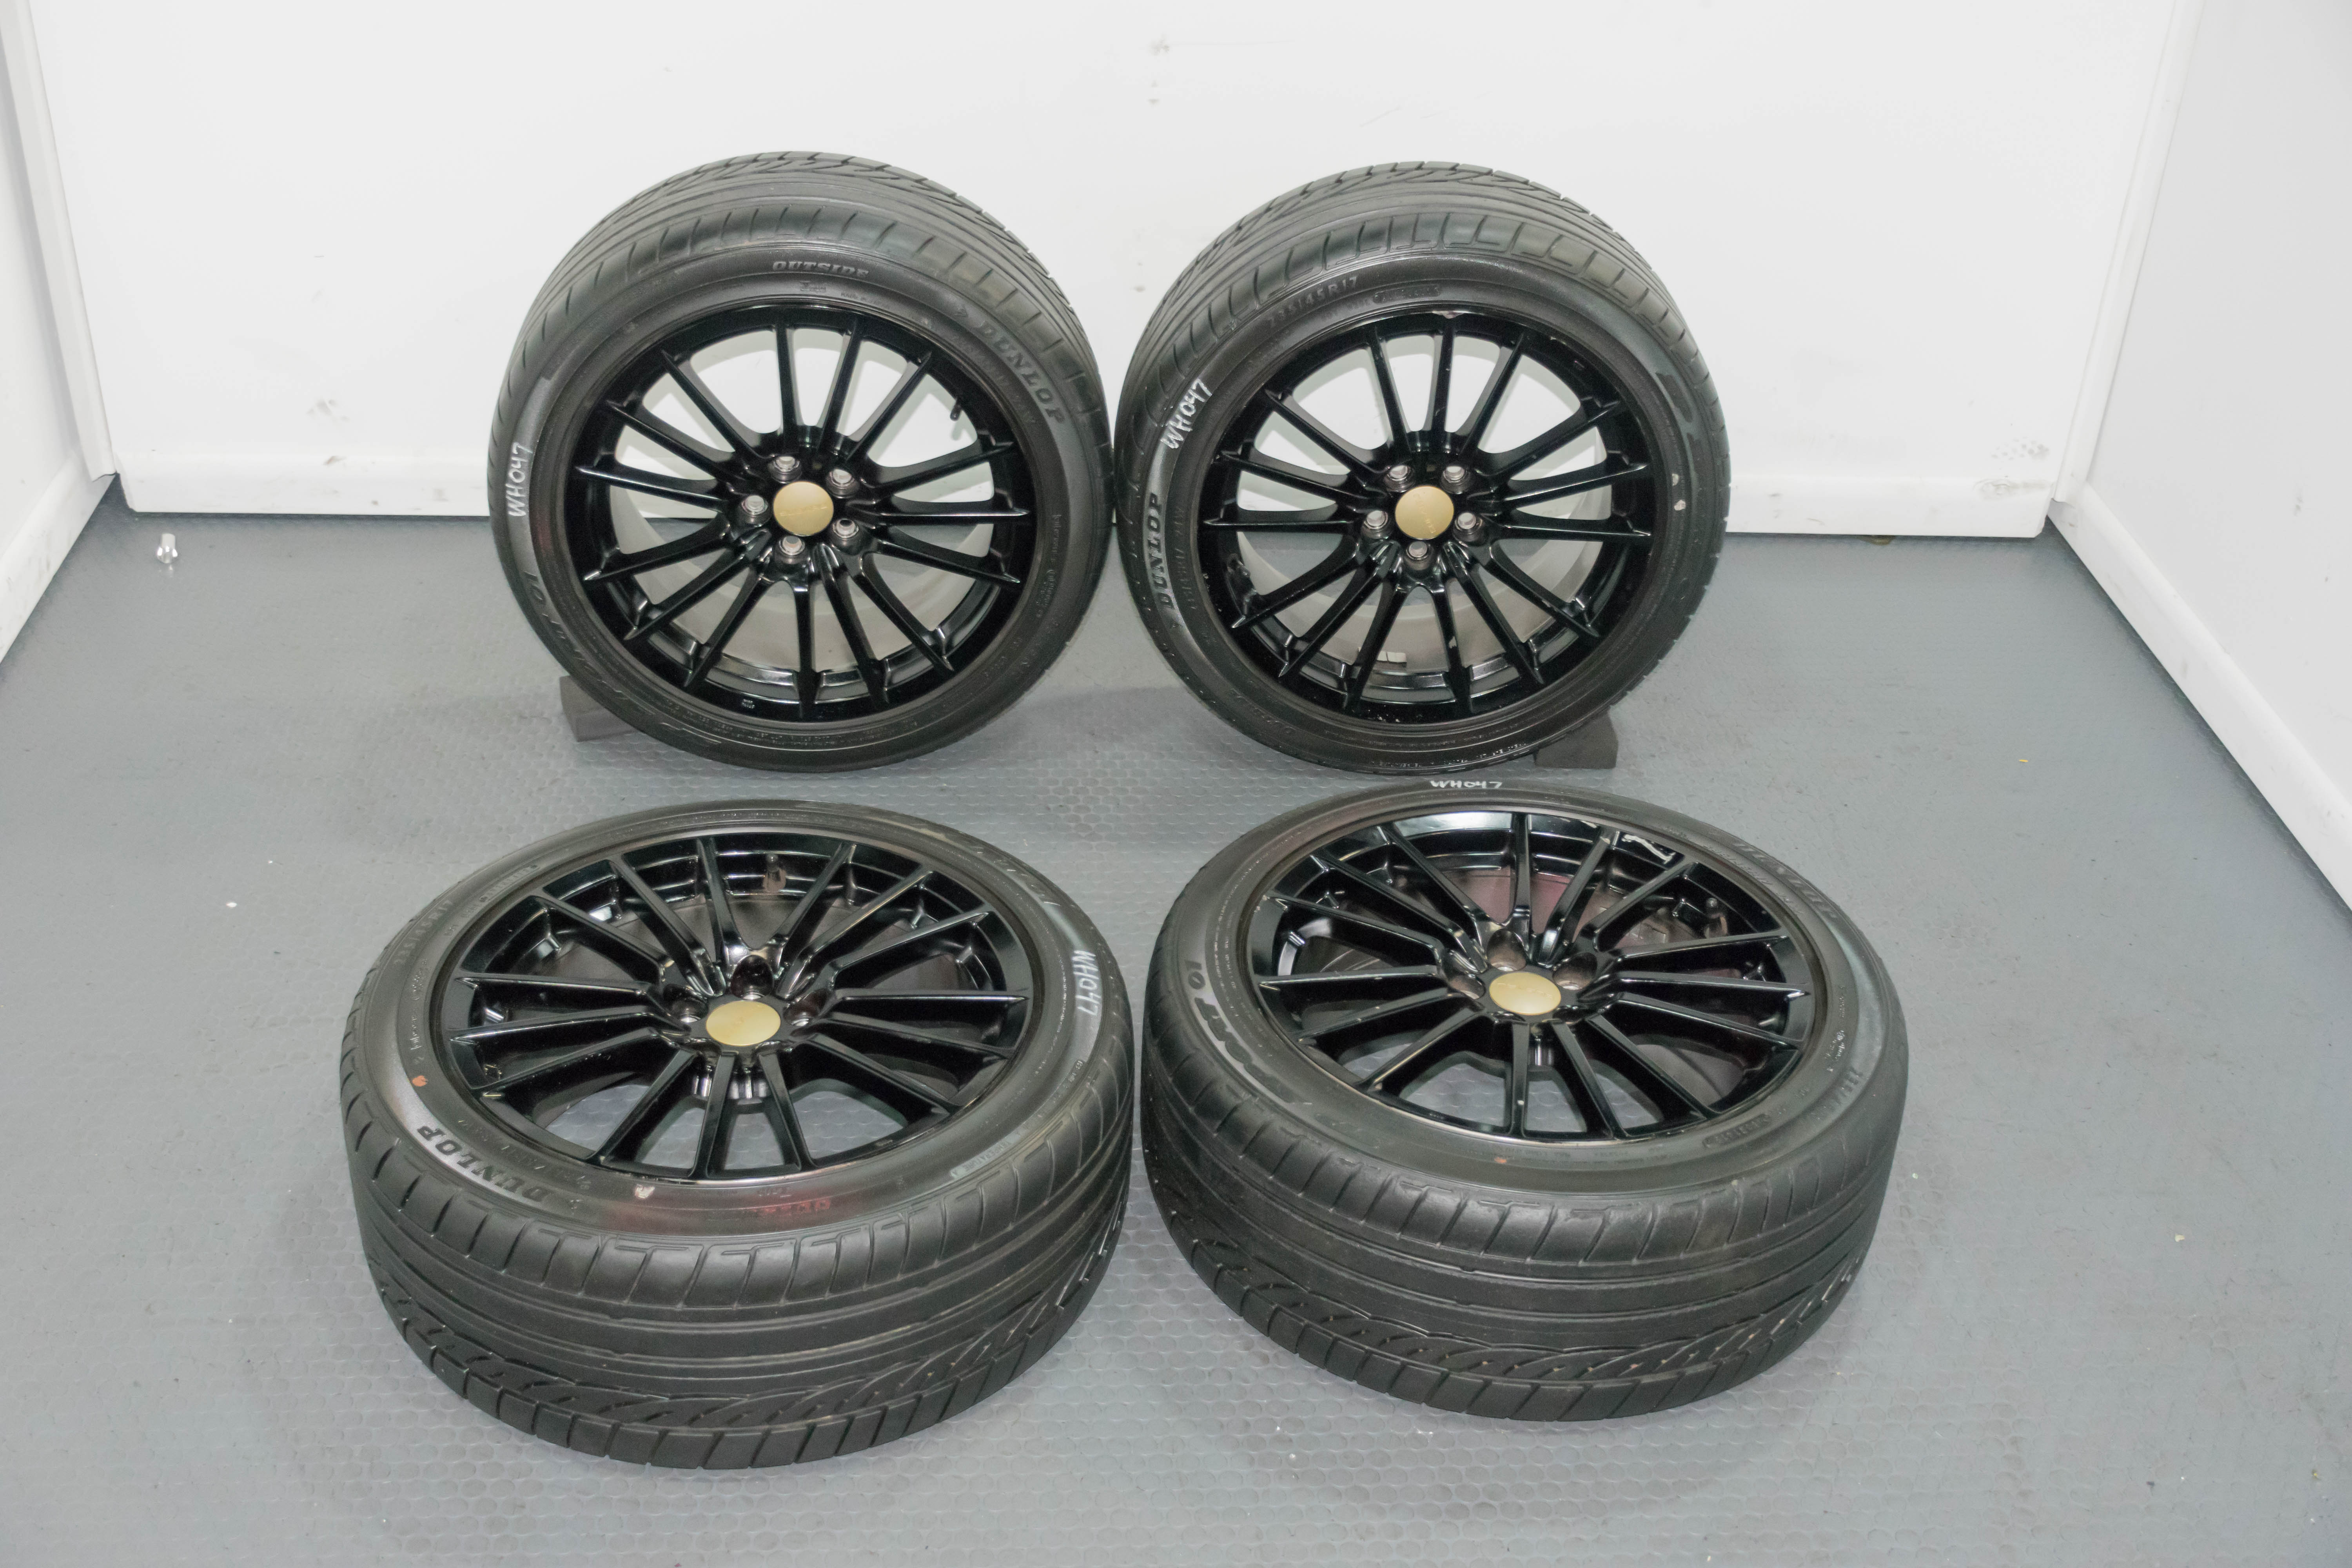 Used Wheels For Sale >> Used Set Of 17 Inch Subaru Black Wheels For Sale